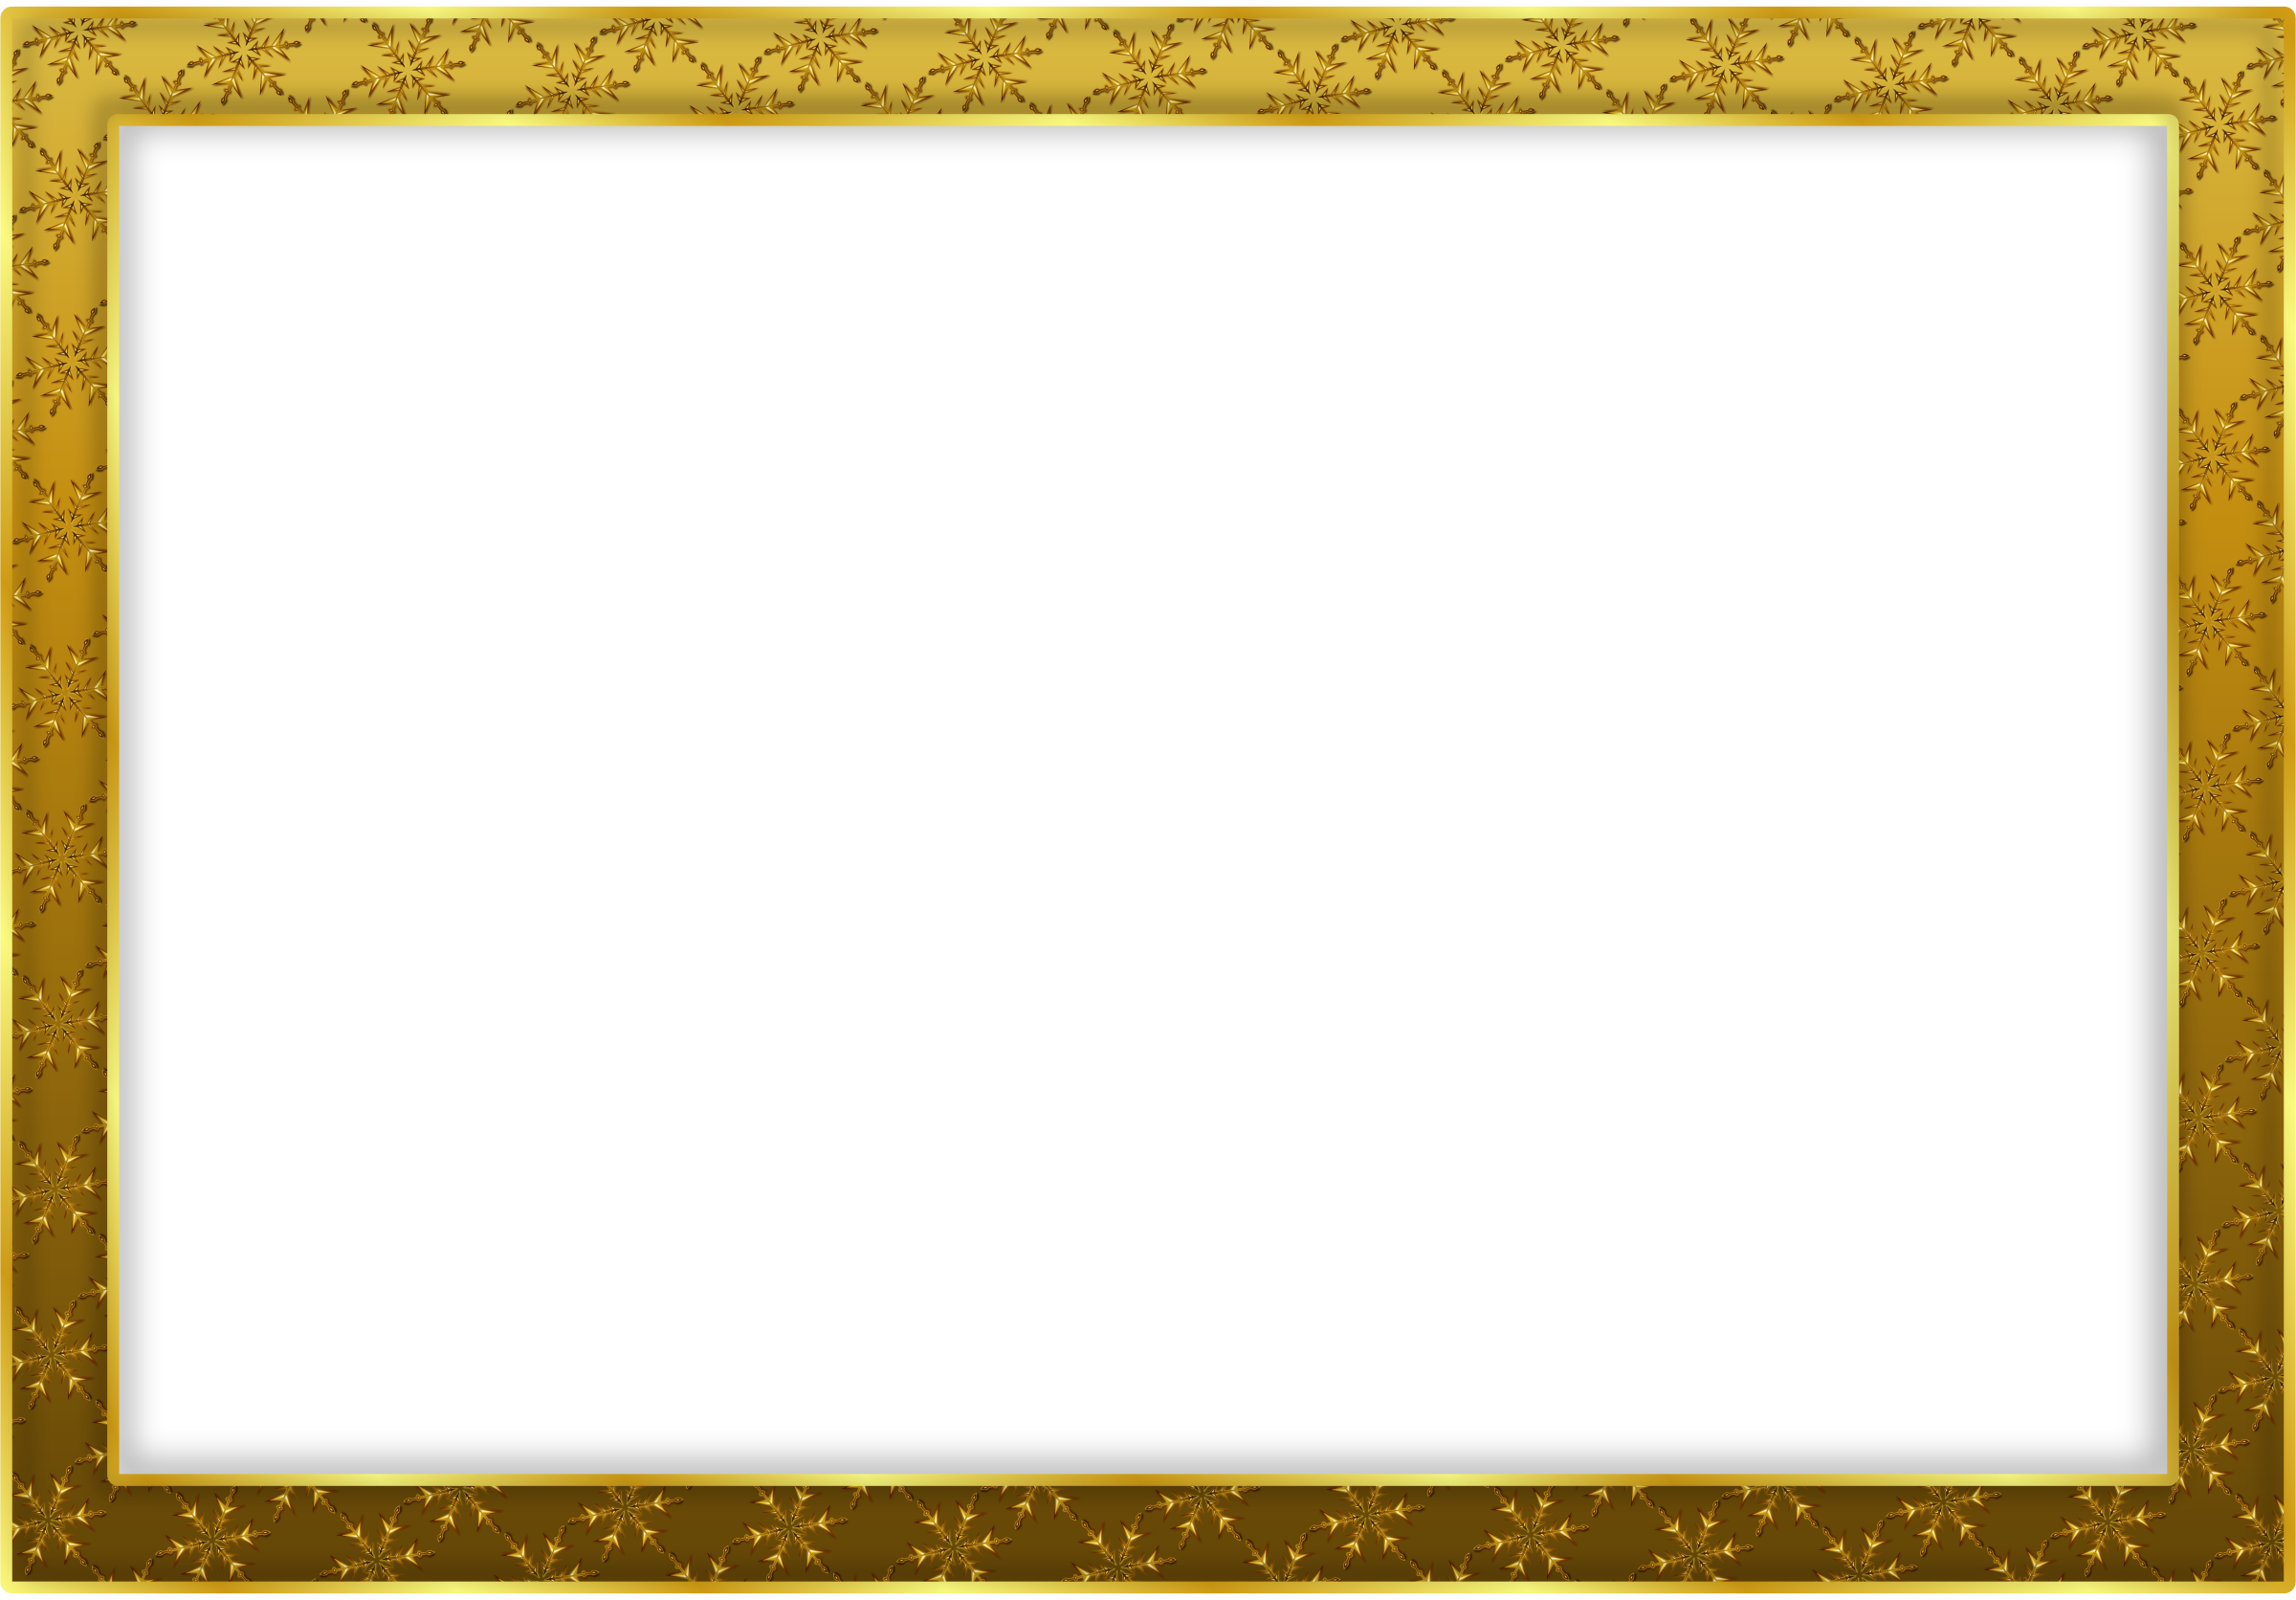 Png frame photo. Gold transparent images all